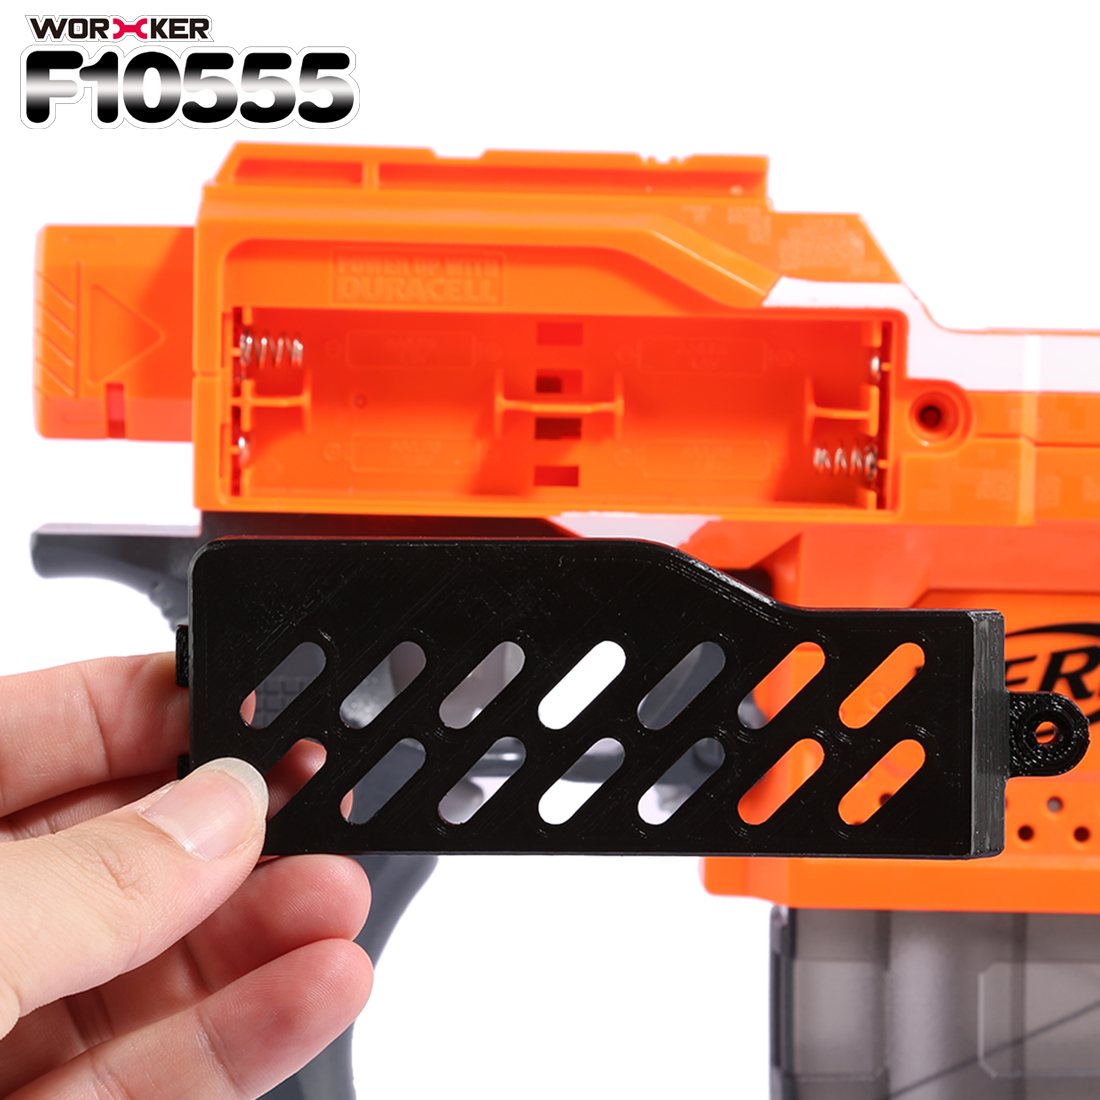 WORKER F10555 3D Printed Extended Battery Cover For Nerf Stryfe